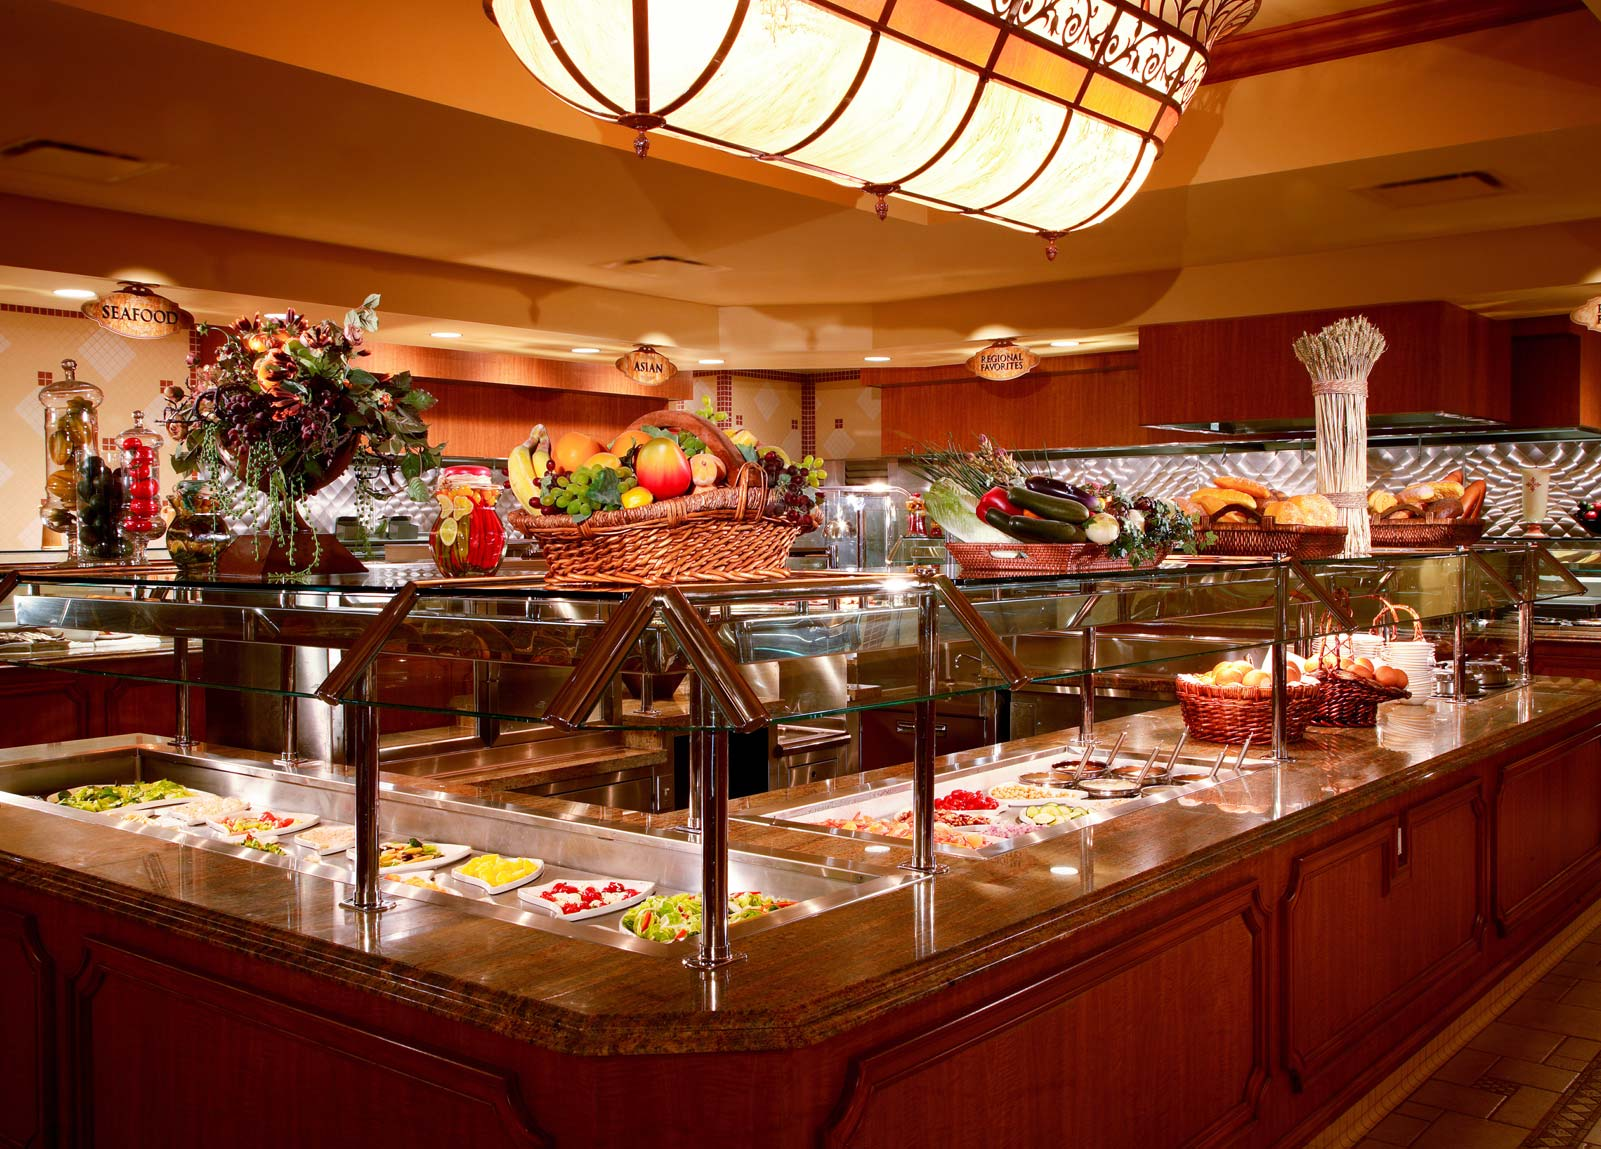 Admirable Golden Nugget Buffet Golden Nugget Buffet Coupon Home Interior And Landscaping Transignezvosmurscom